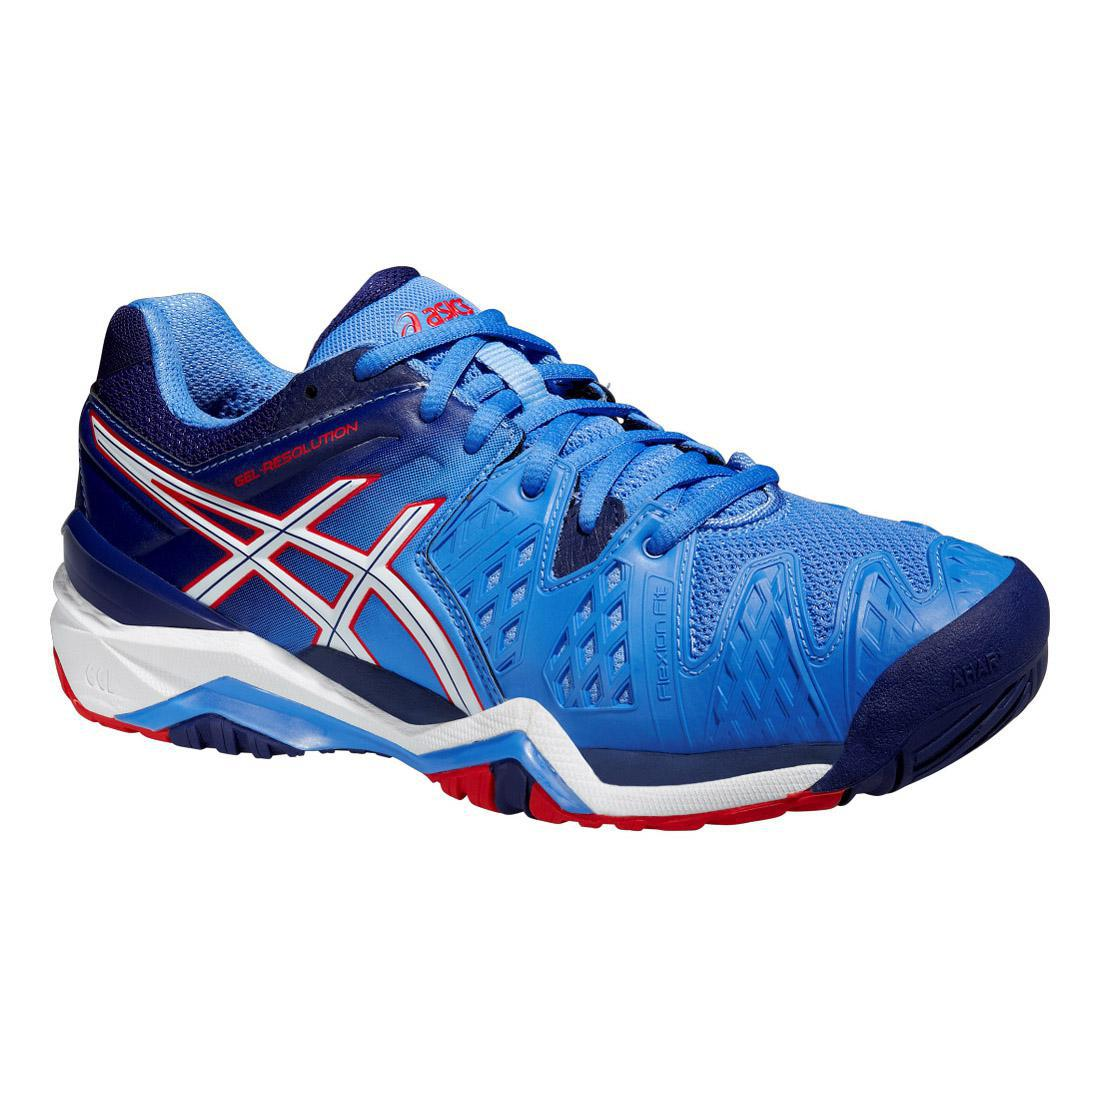 Asics Womens Tennis Shoes For Sale